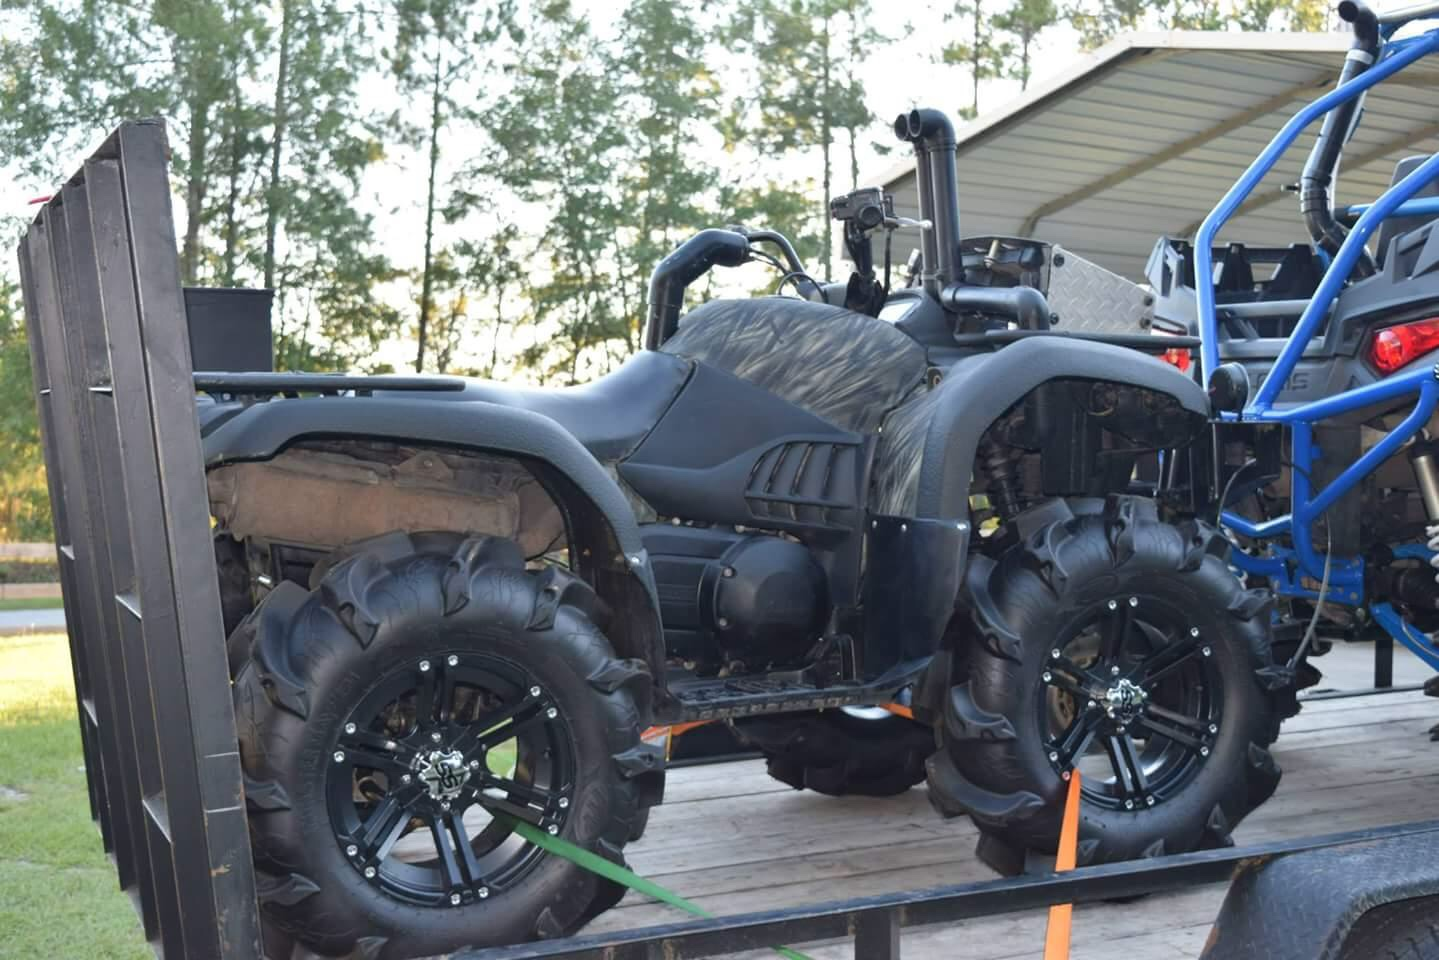 hight resolution of 2002 grizzly 660 rebuild pictures and progress yamaha grizzly atv forum